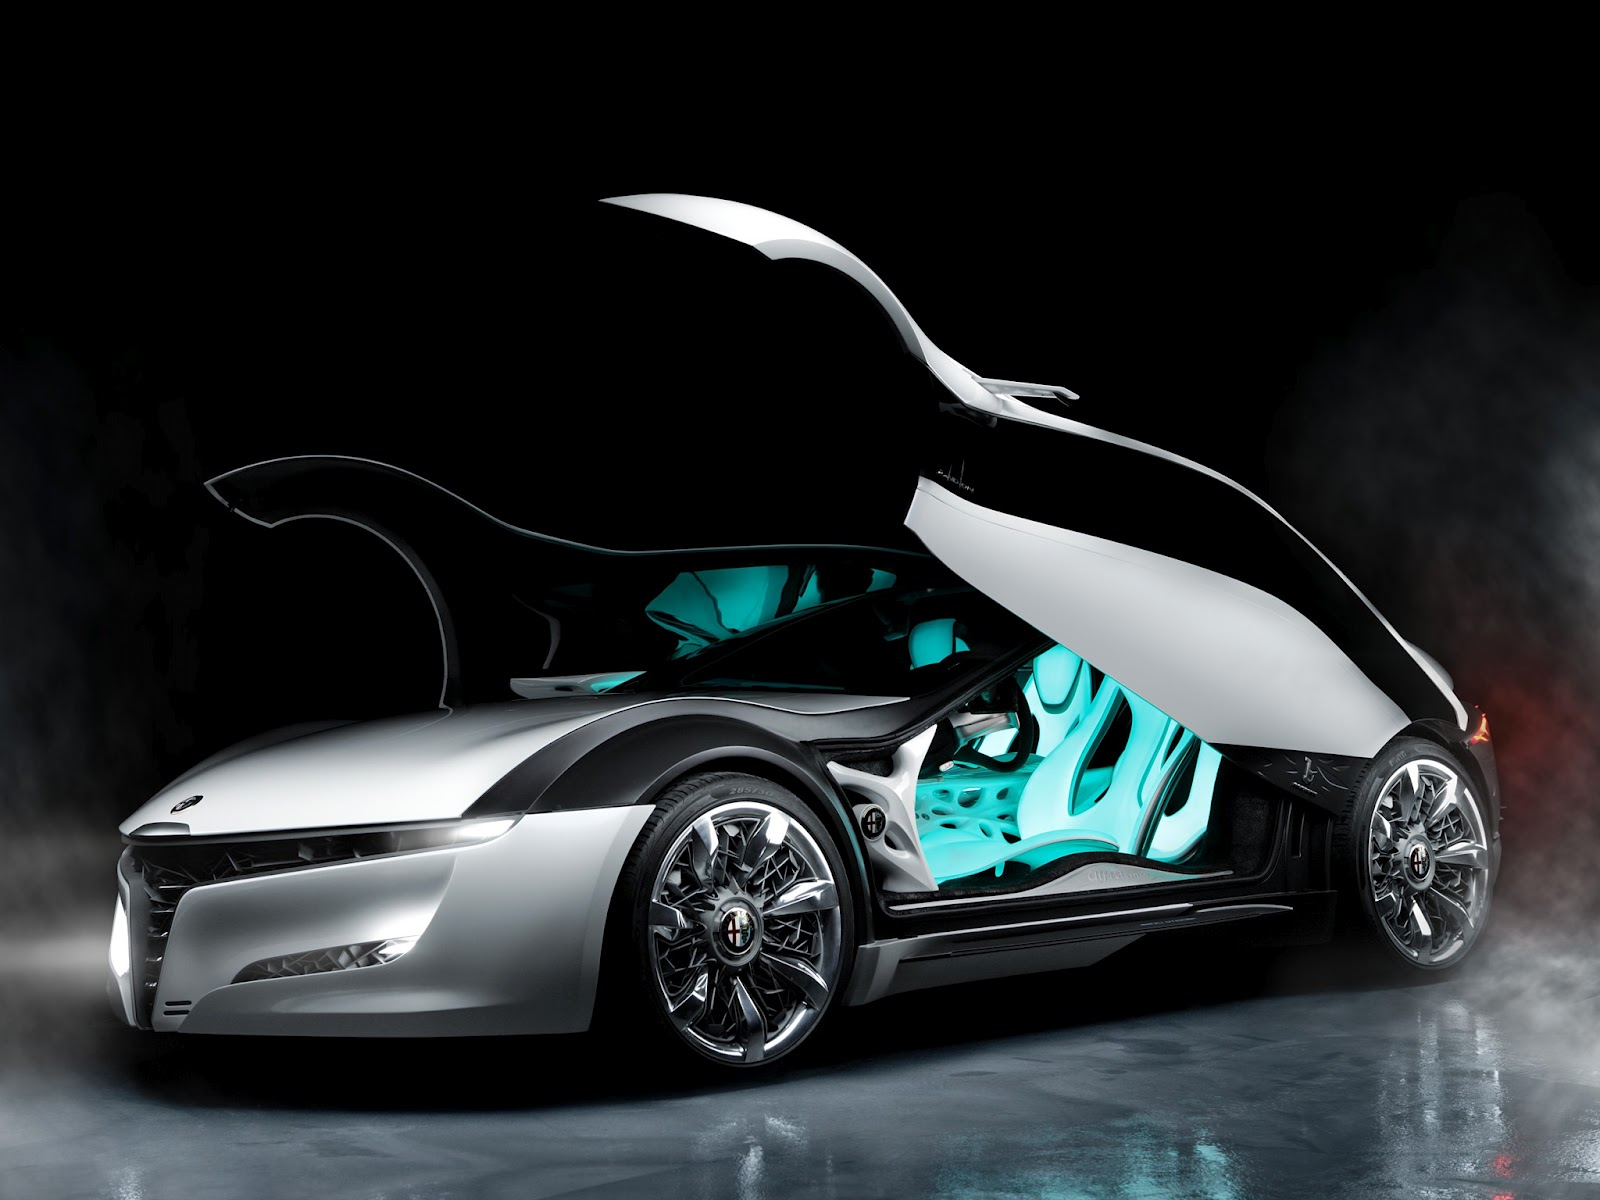 concept car hd wallpaper - photo #2